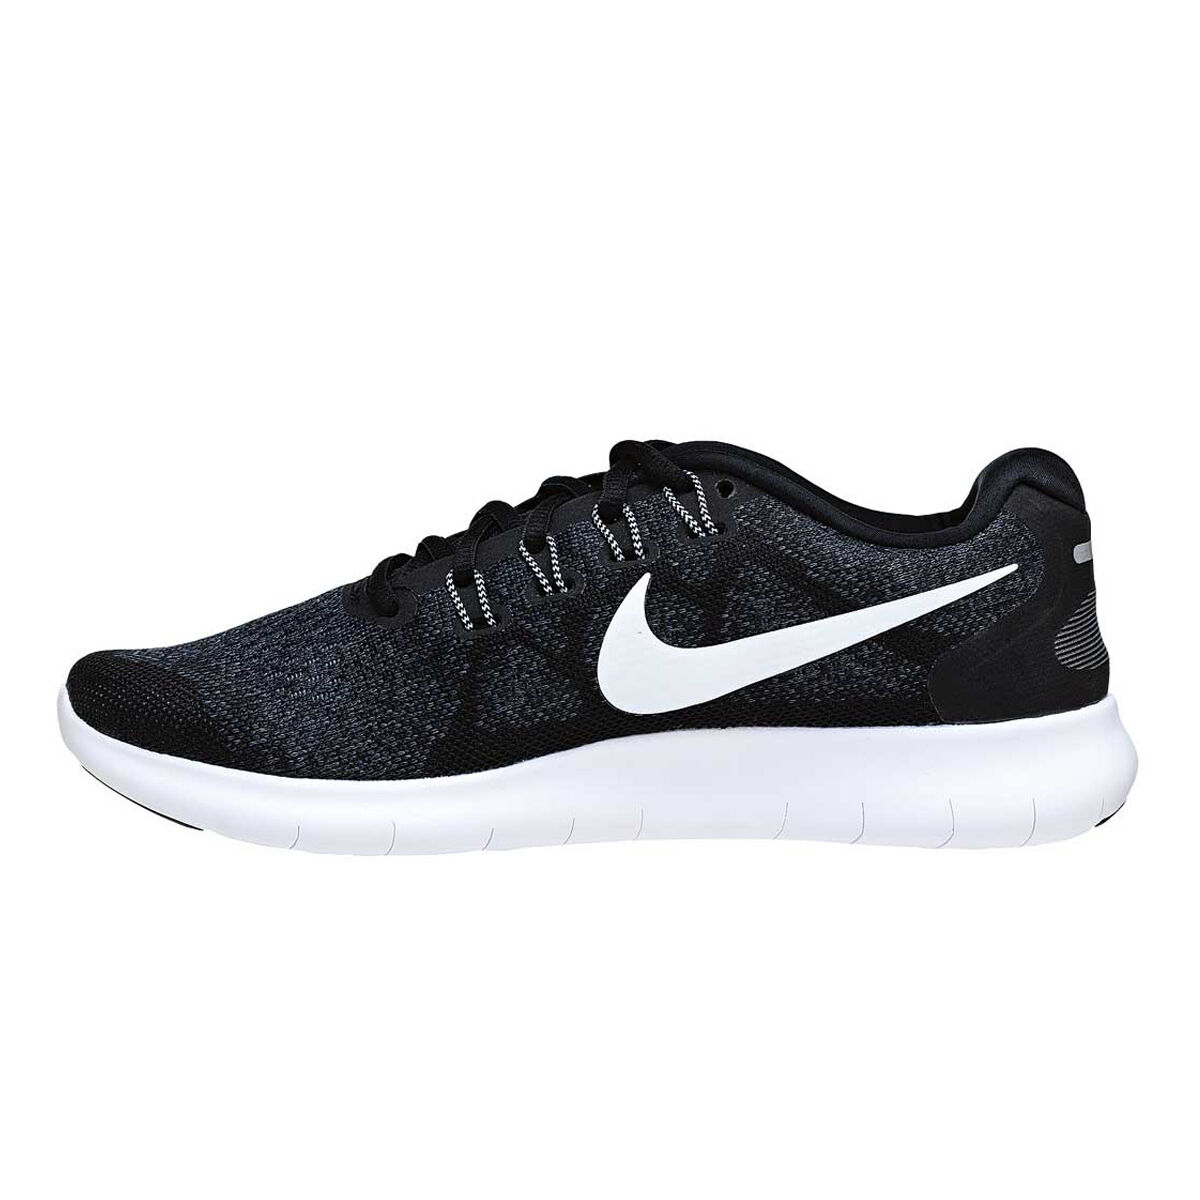 huge discount 3d2bf cf4f5 ... official nike free run 2 mens running shoes black white us 7 black  white d03d4 fb83c